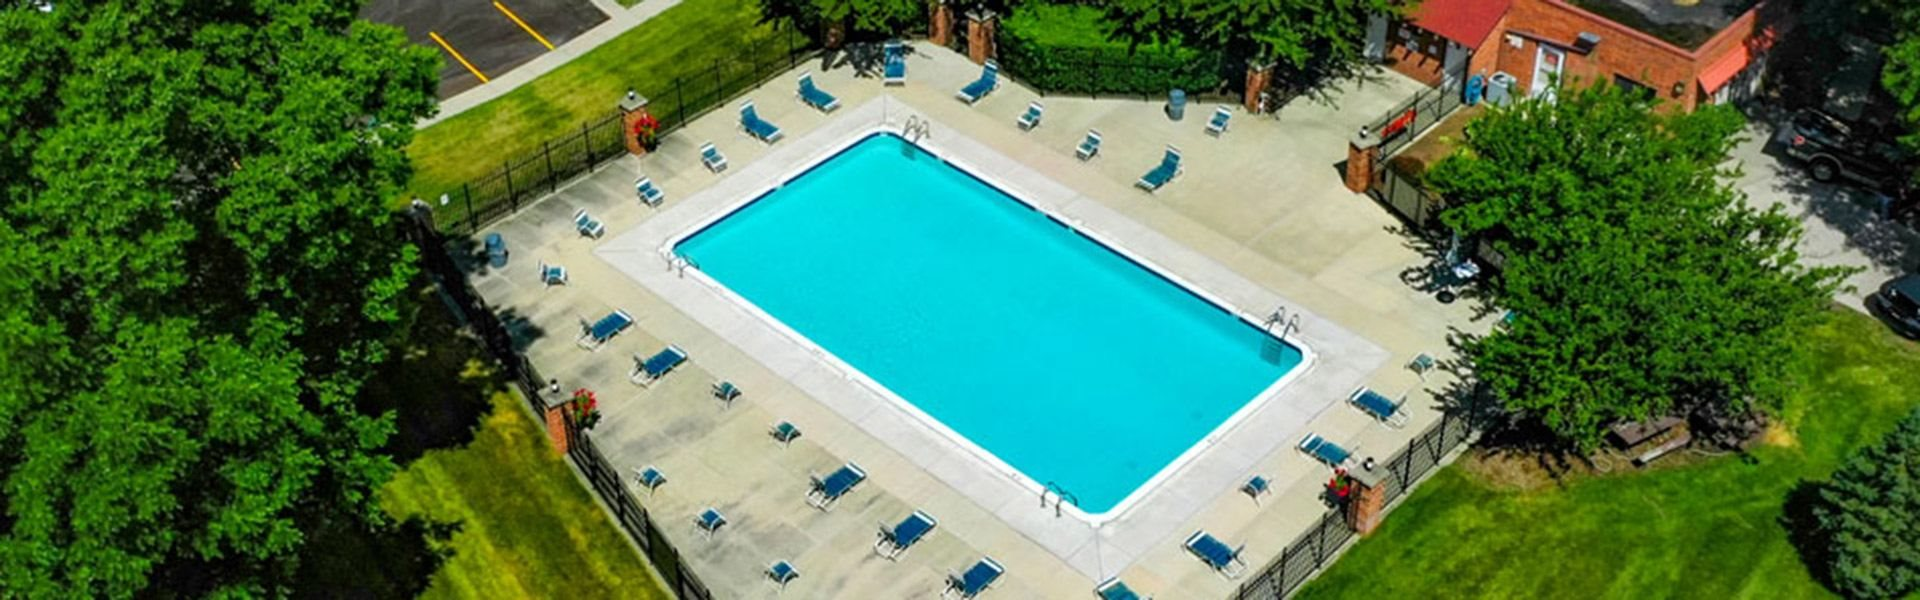 Swimming Pool And Relaxing Area at Old Farm Apartments, Indiana, 46517